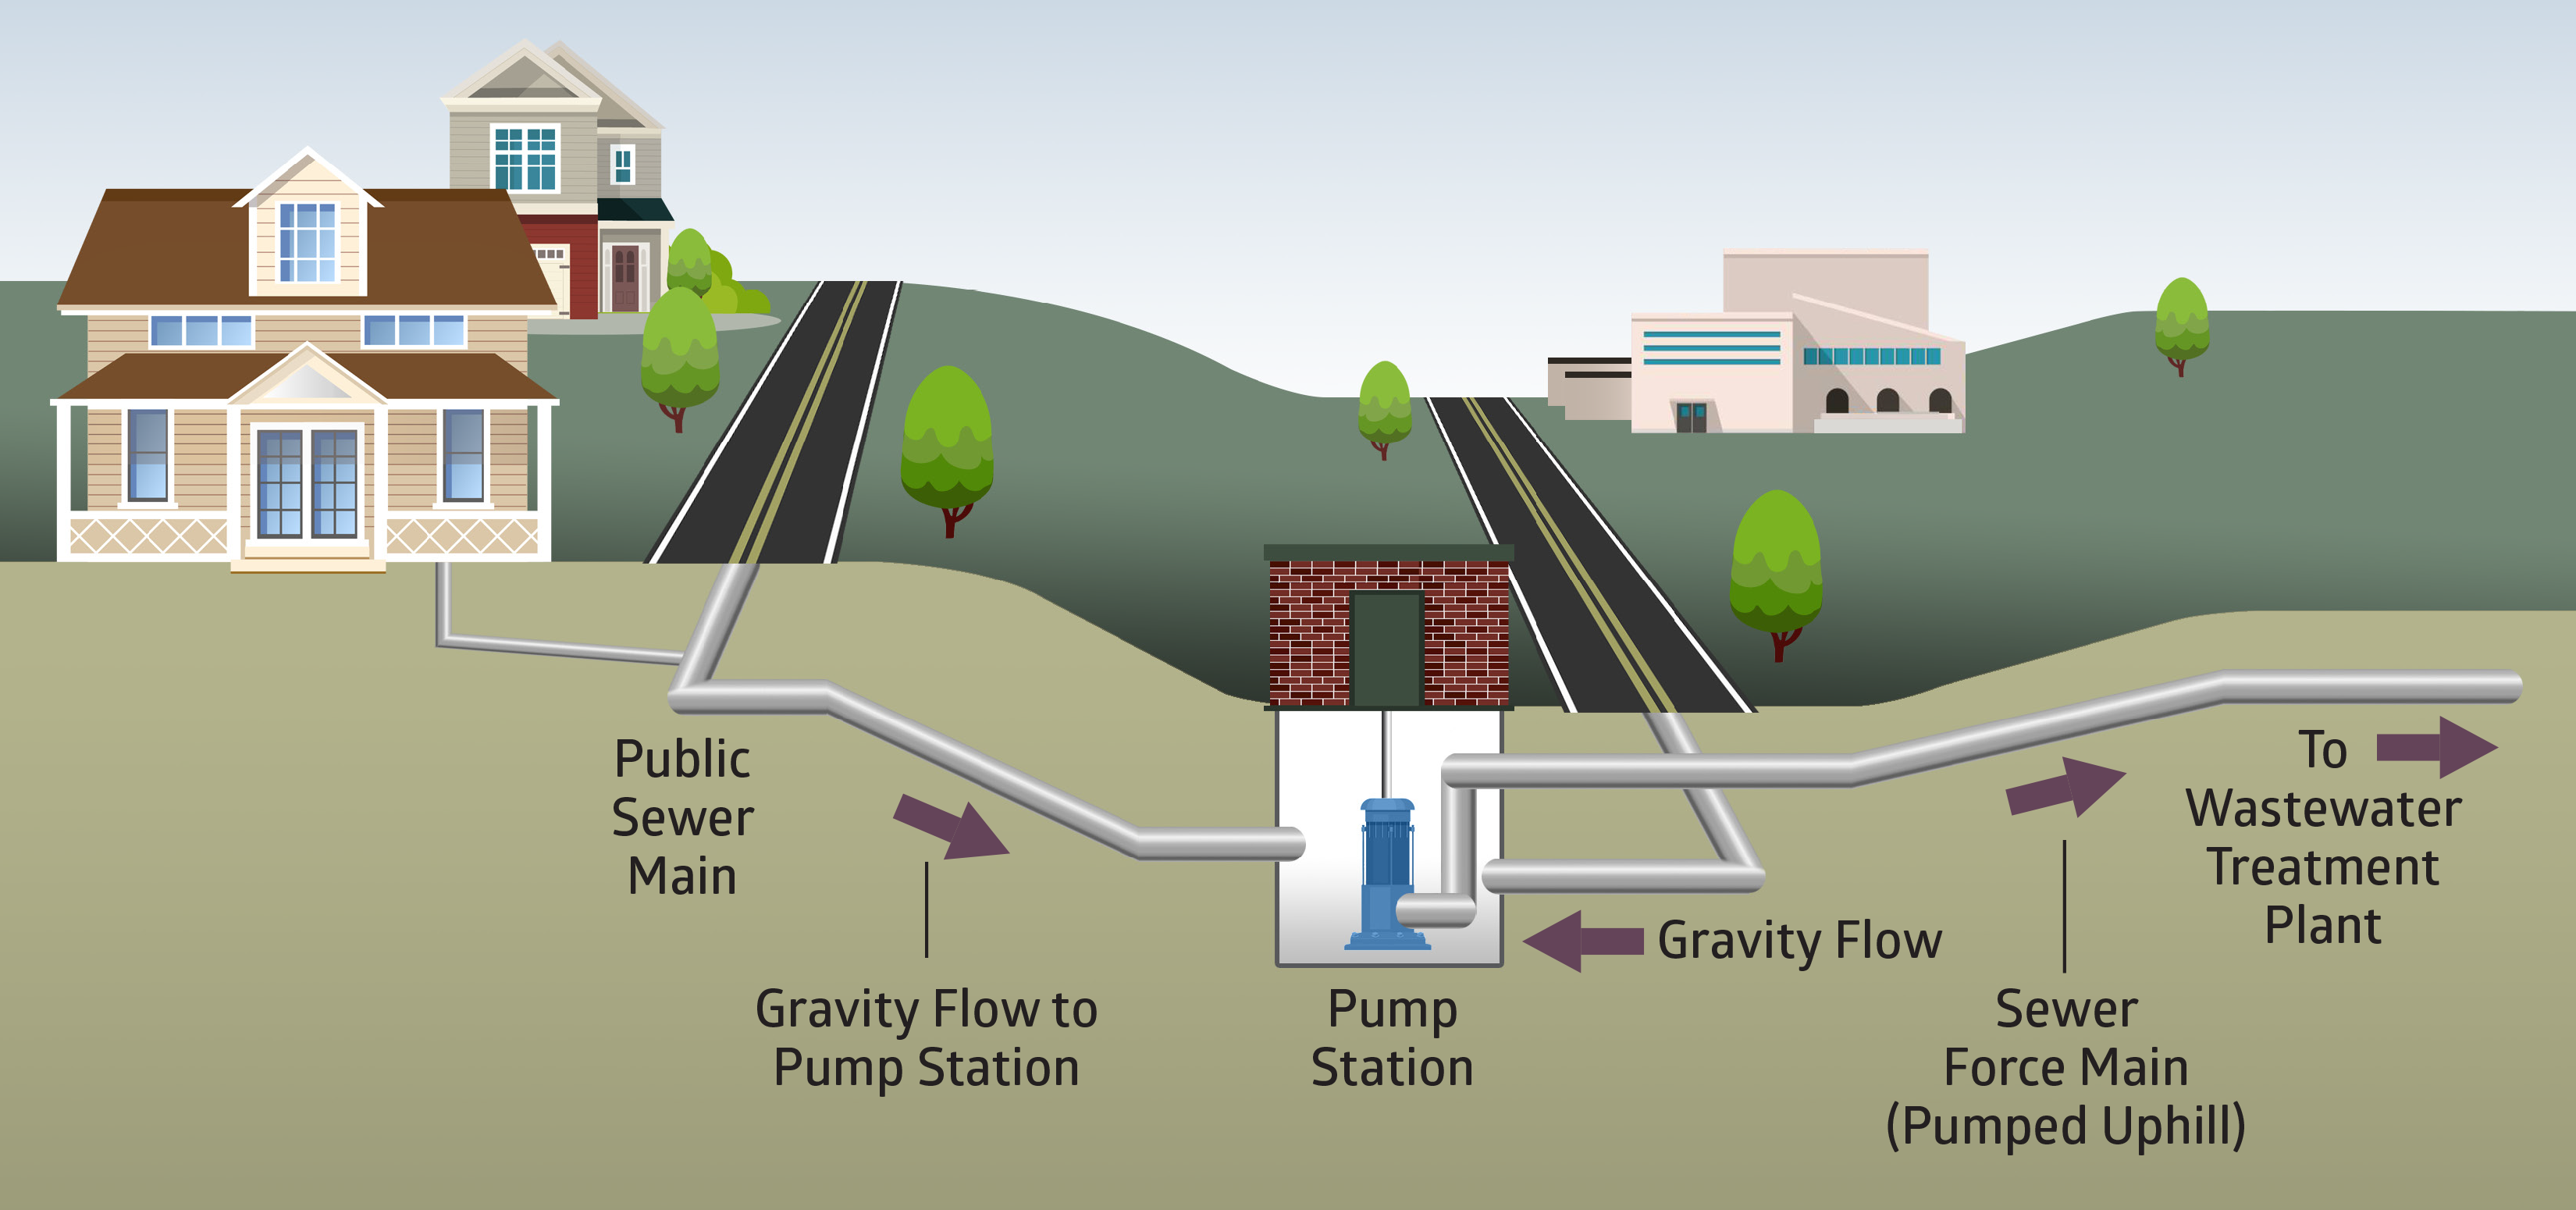 Gravity Sewer diagram: Public Sewer Main → Gravity Flow to Pump Station → Pump Station → Sewer Force Main (Pumped Uphill) → To Wastewater Treatment Plant